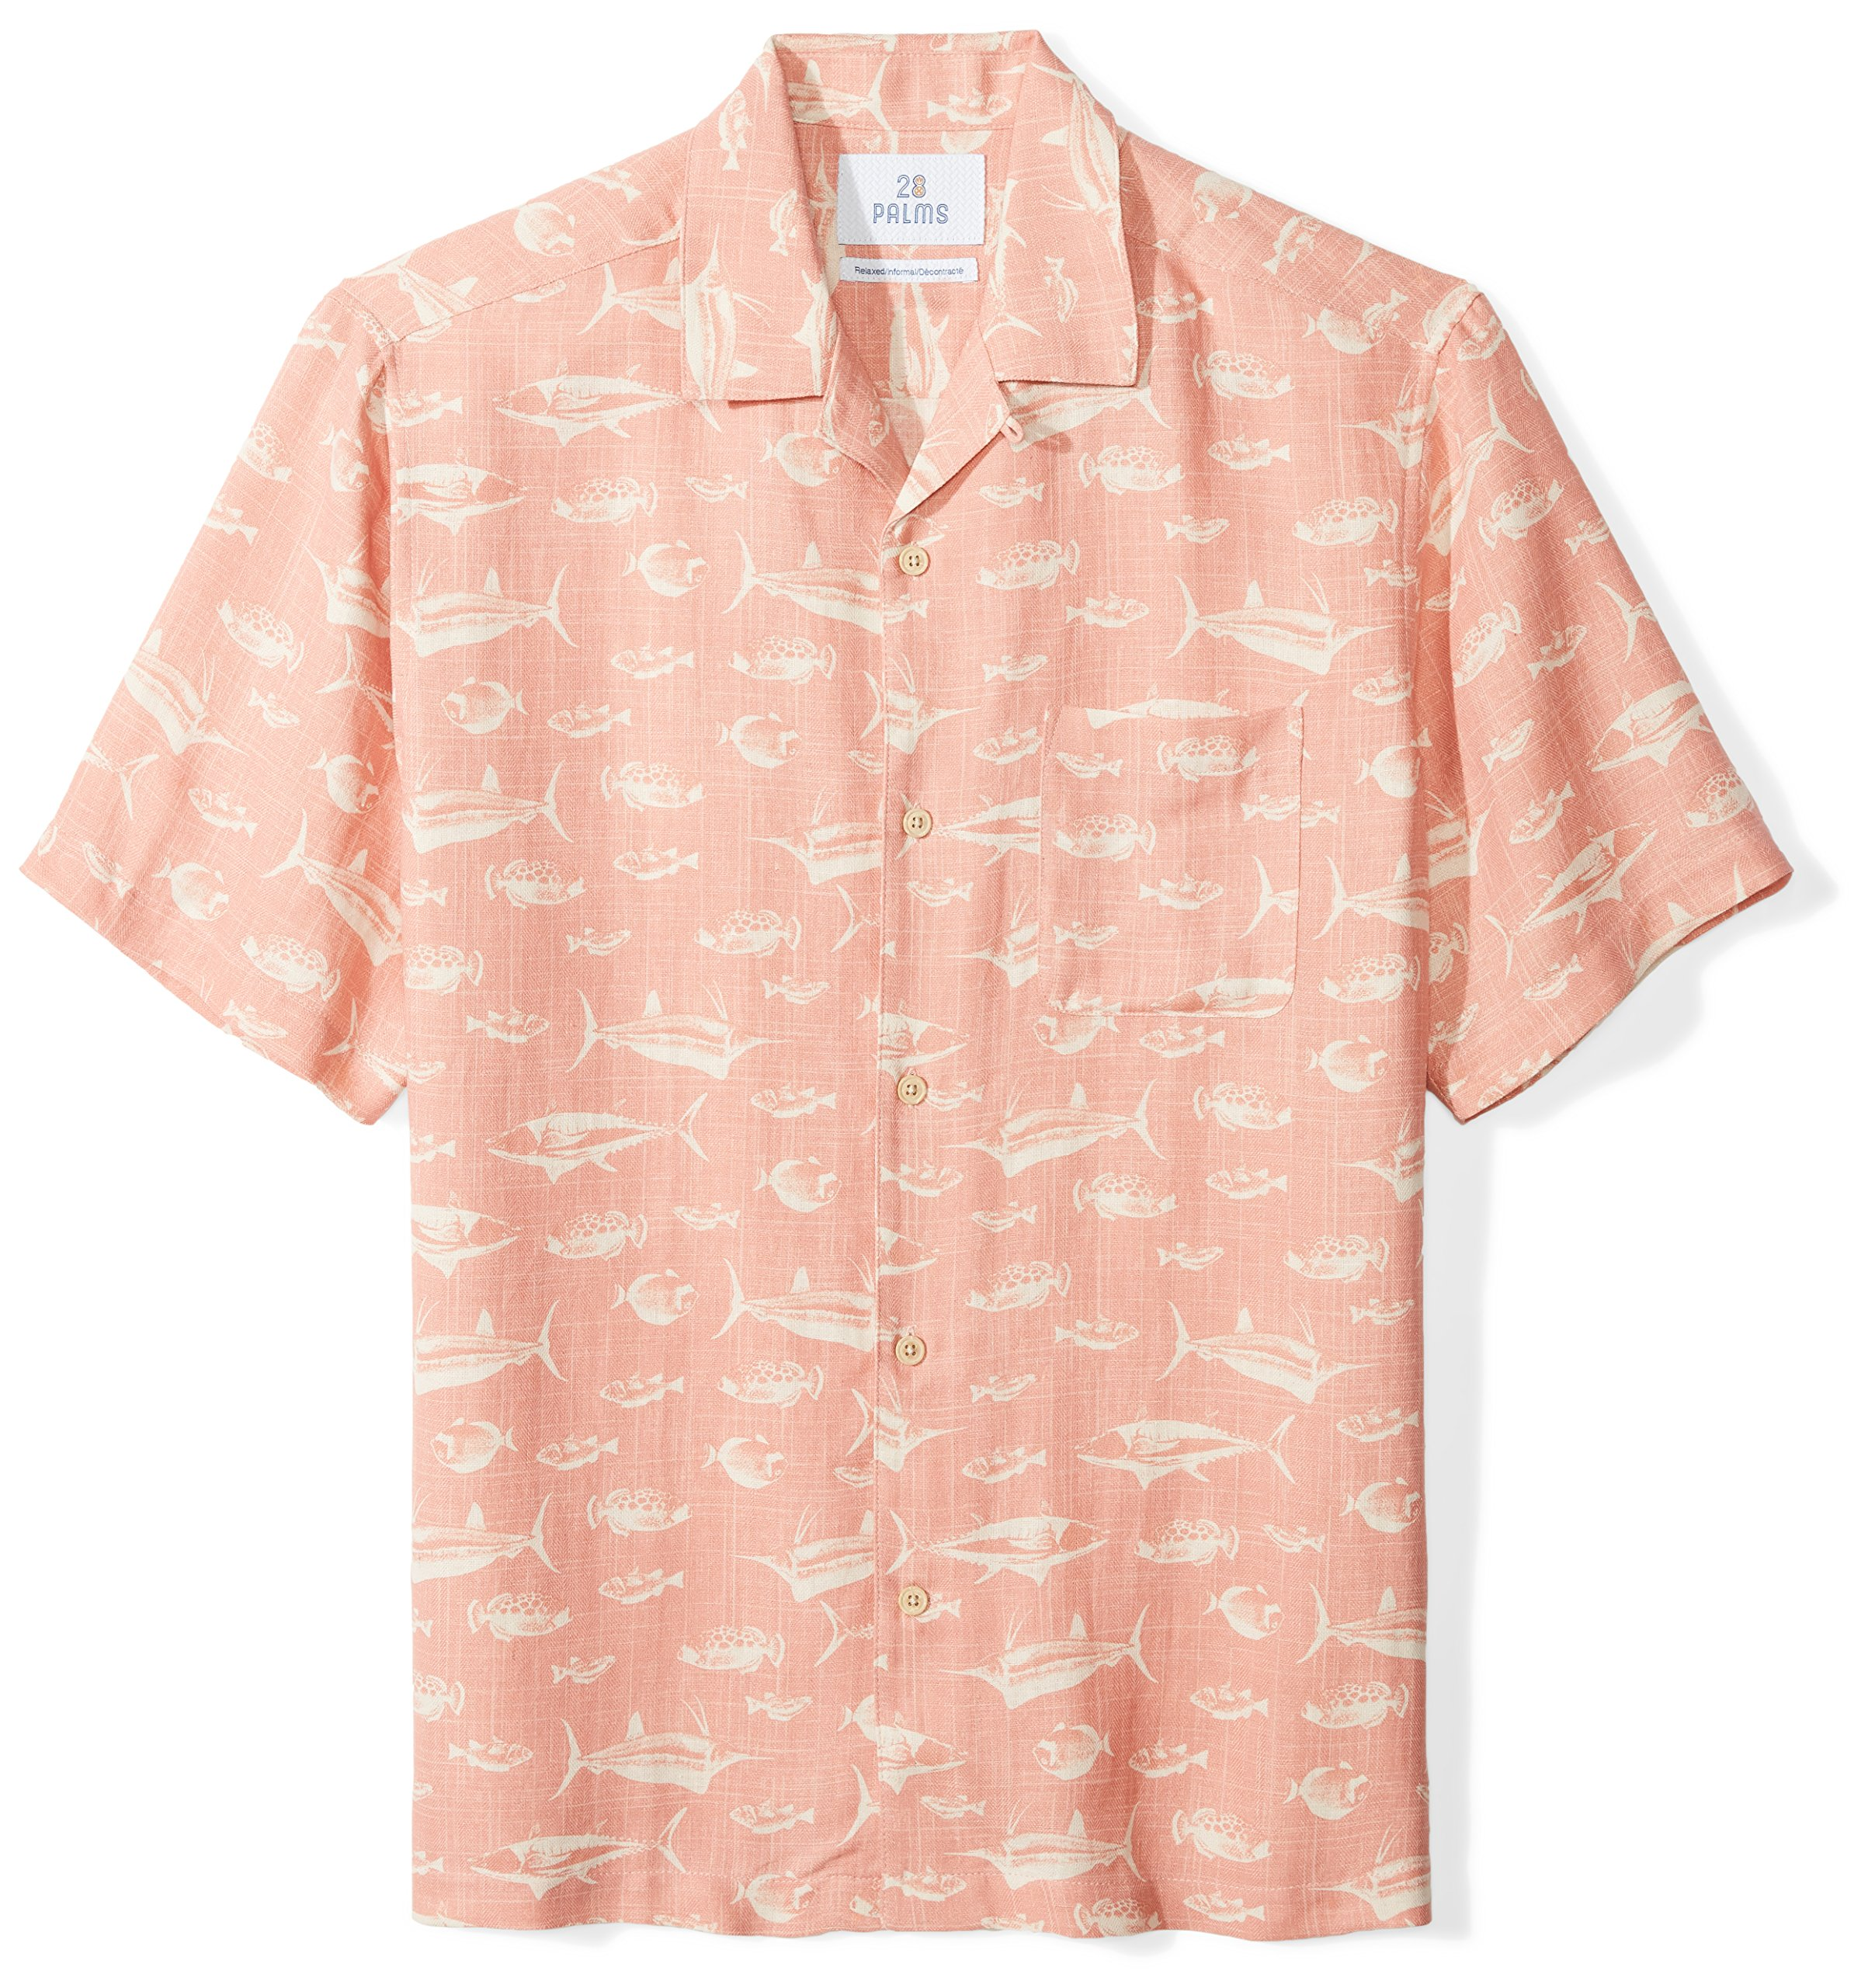 28 Palms Men's Relaxed-Fit Silk/Linen Tropical Hawaiian Shirt, Washed Pink Fish, Large